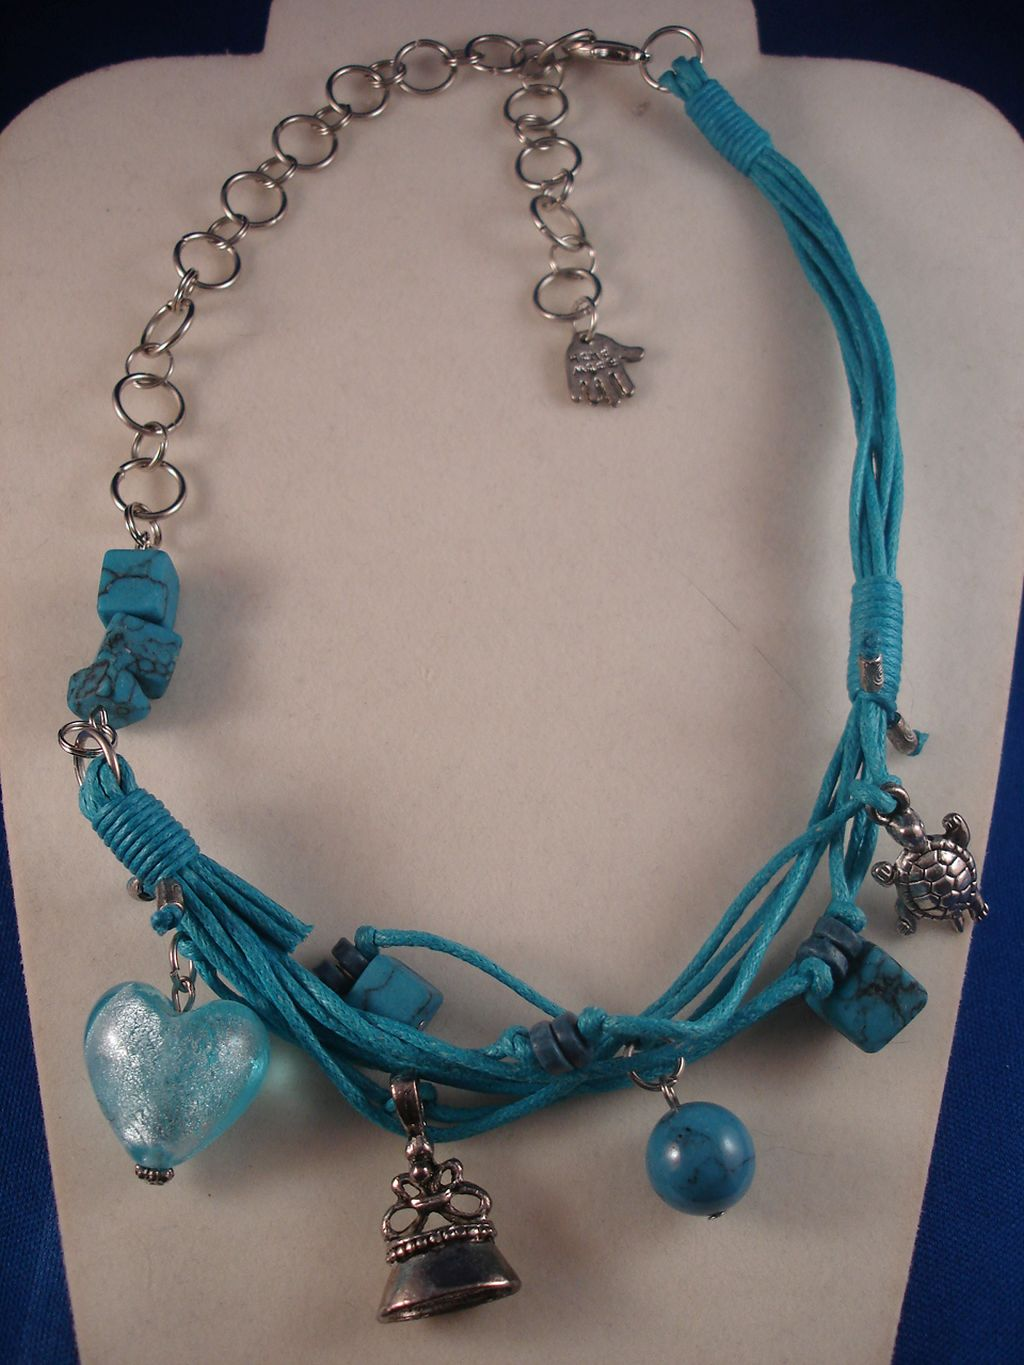 Blue Cotton & Chain Necklace, Turtle, Bell, Palm Charms & Glass Heart Pendant, Anti-allergic Jewelry